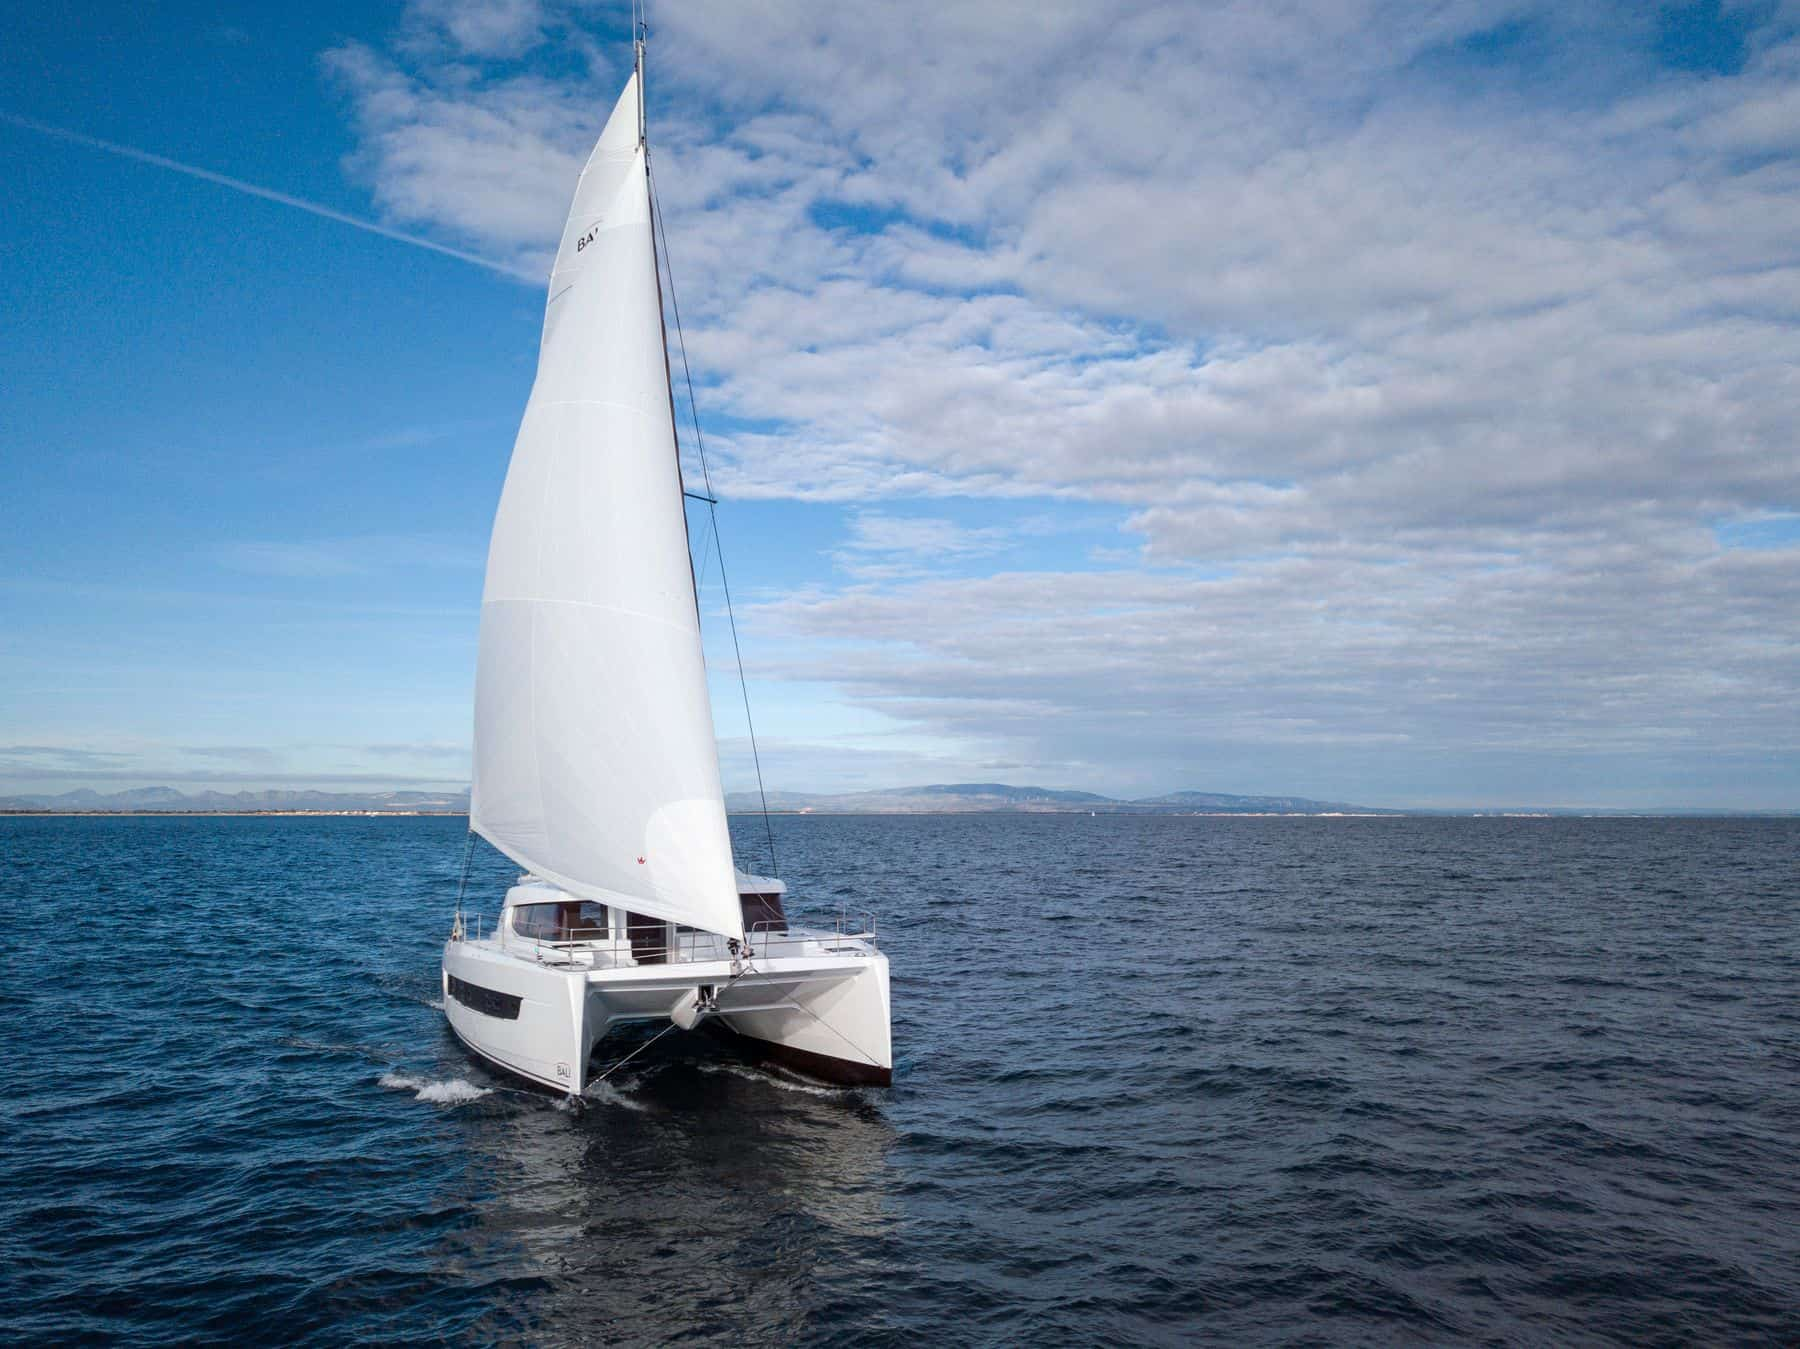 bali 4.8 is safe though some worry about catamarans flipping